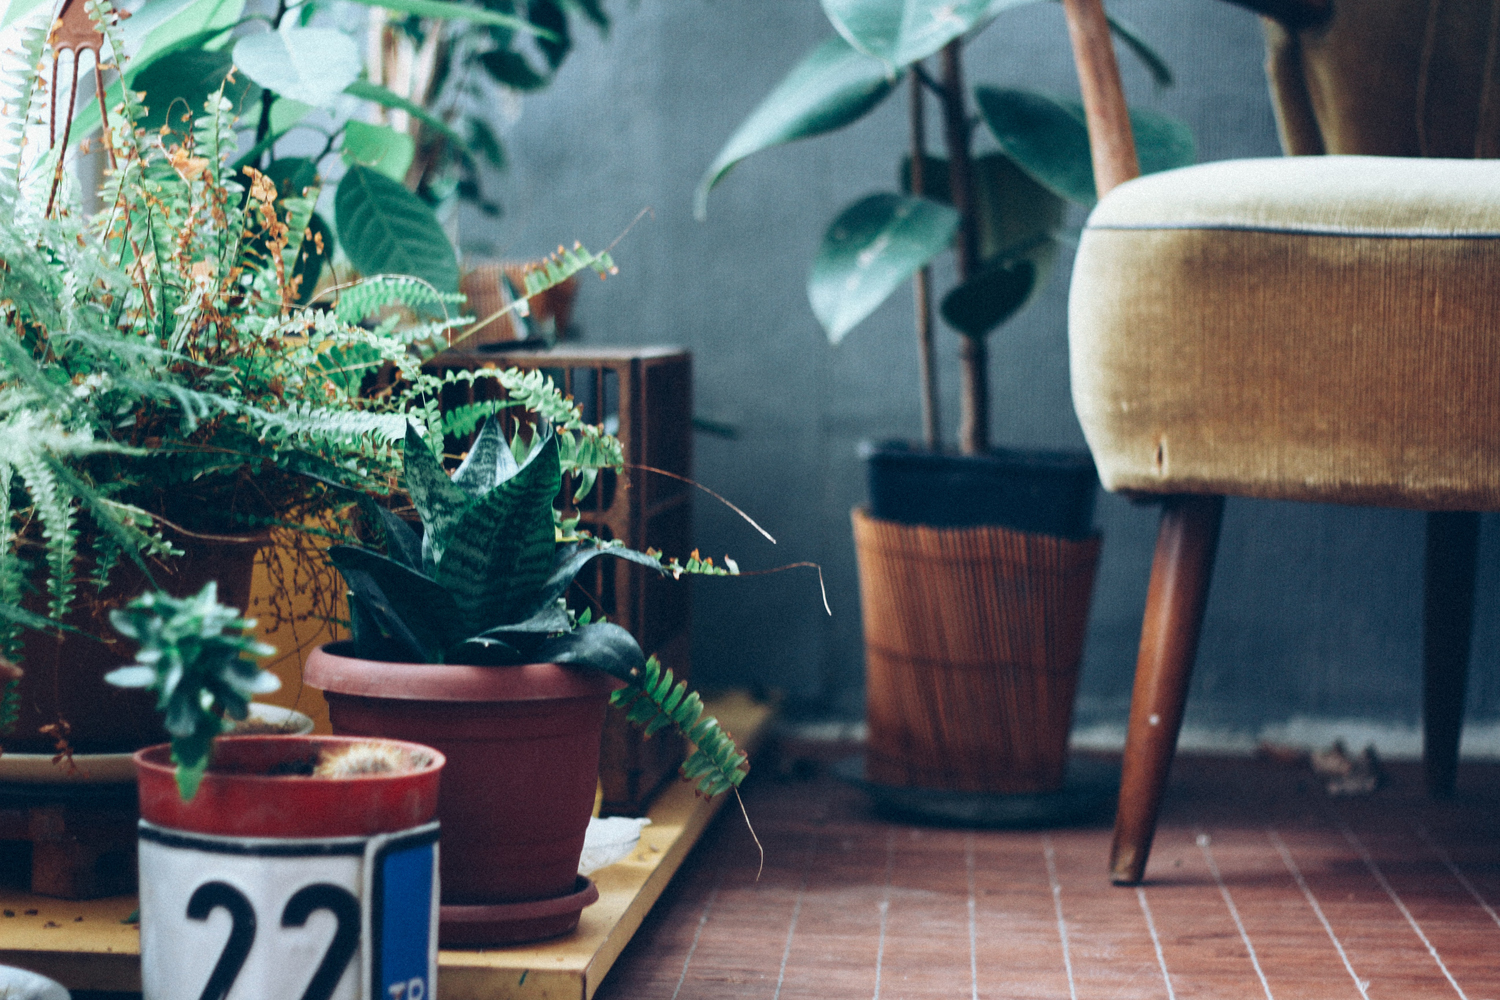 8 tips to help you care for indoor plants